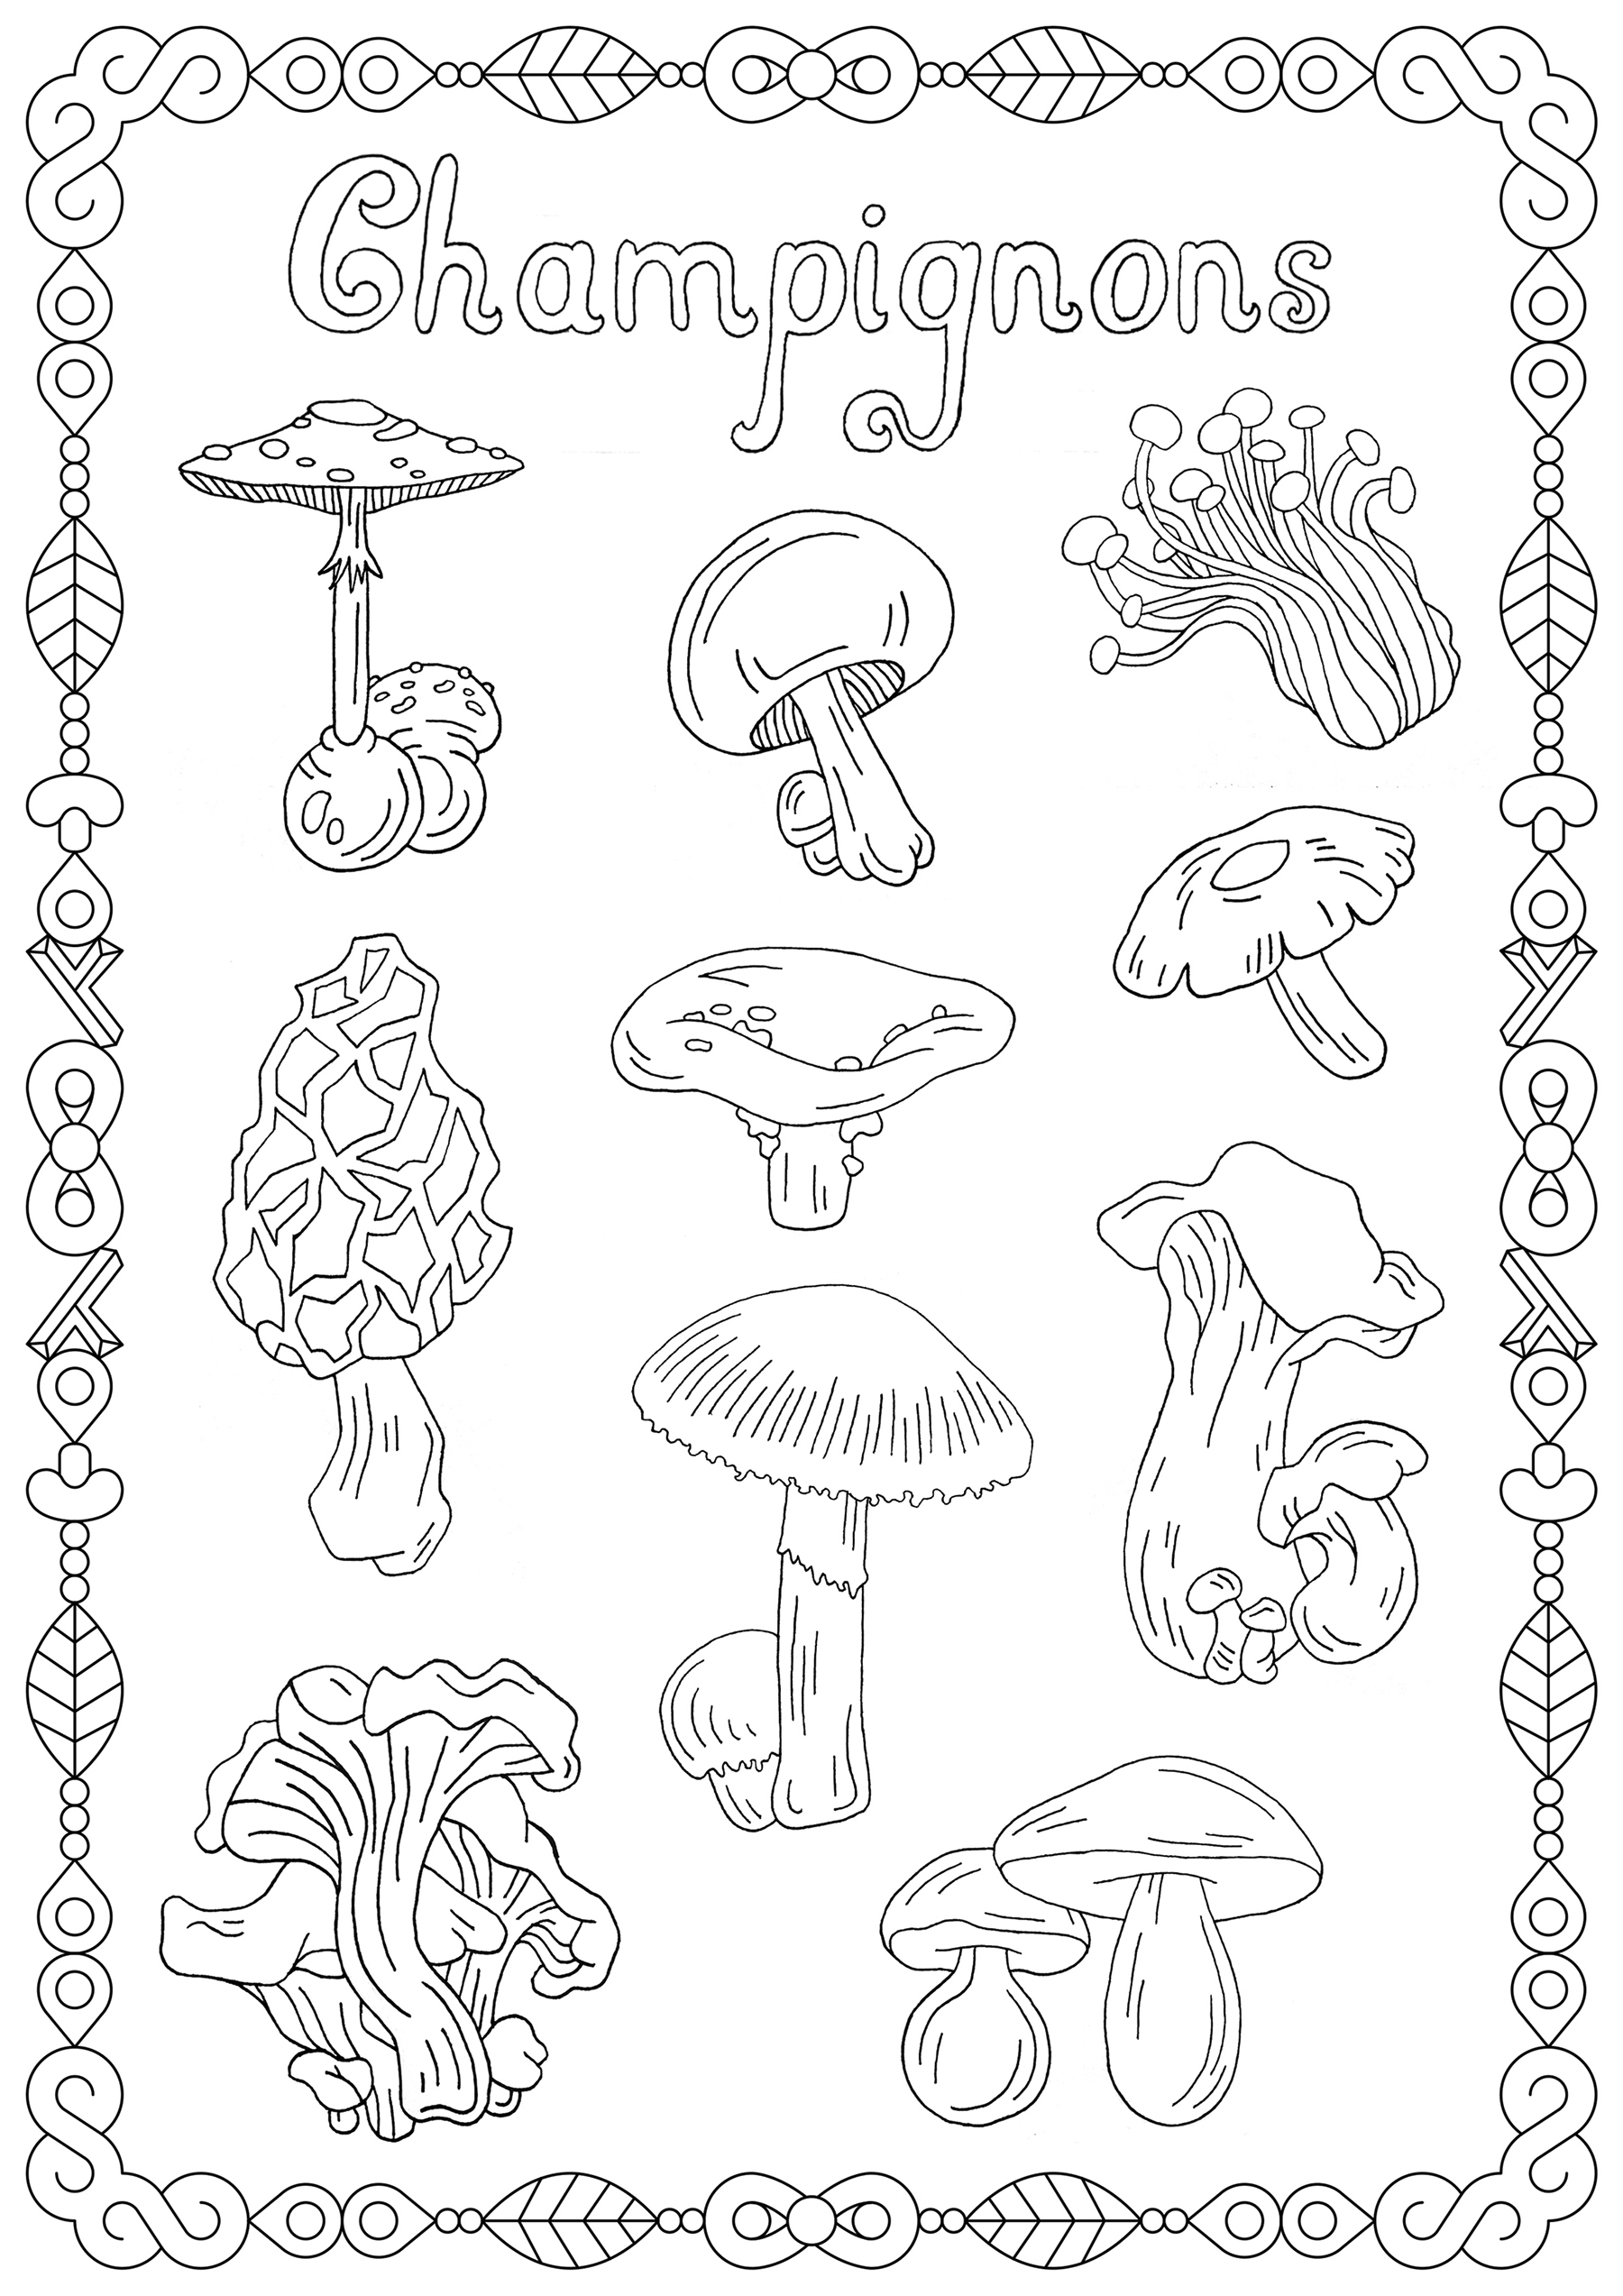 Mushrooms coloring page with few details for kids